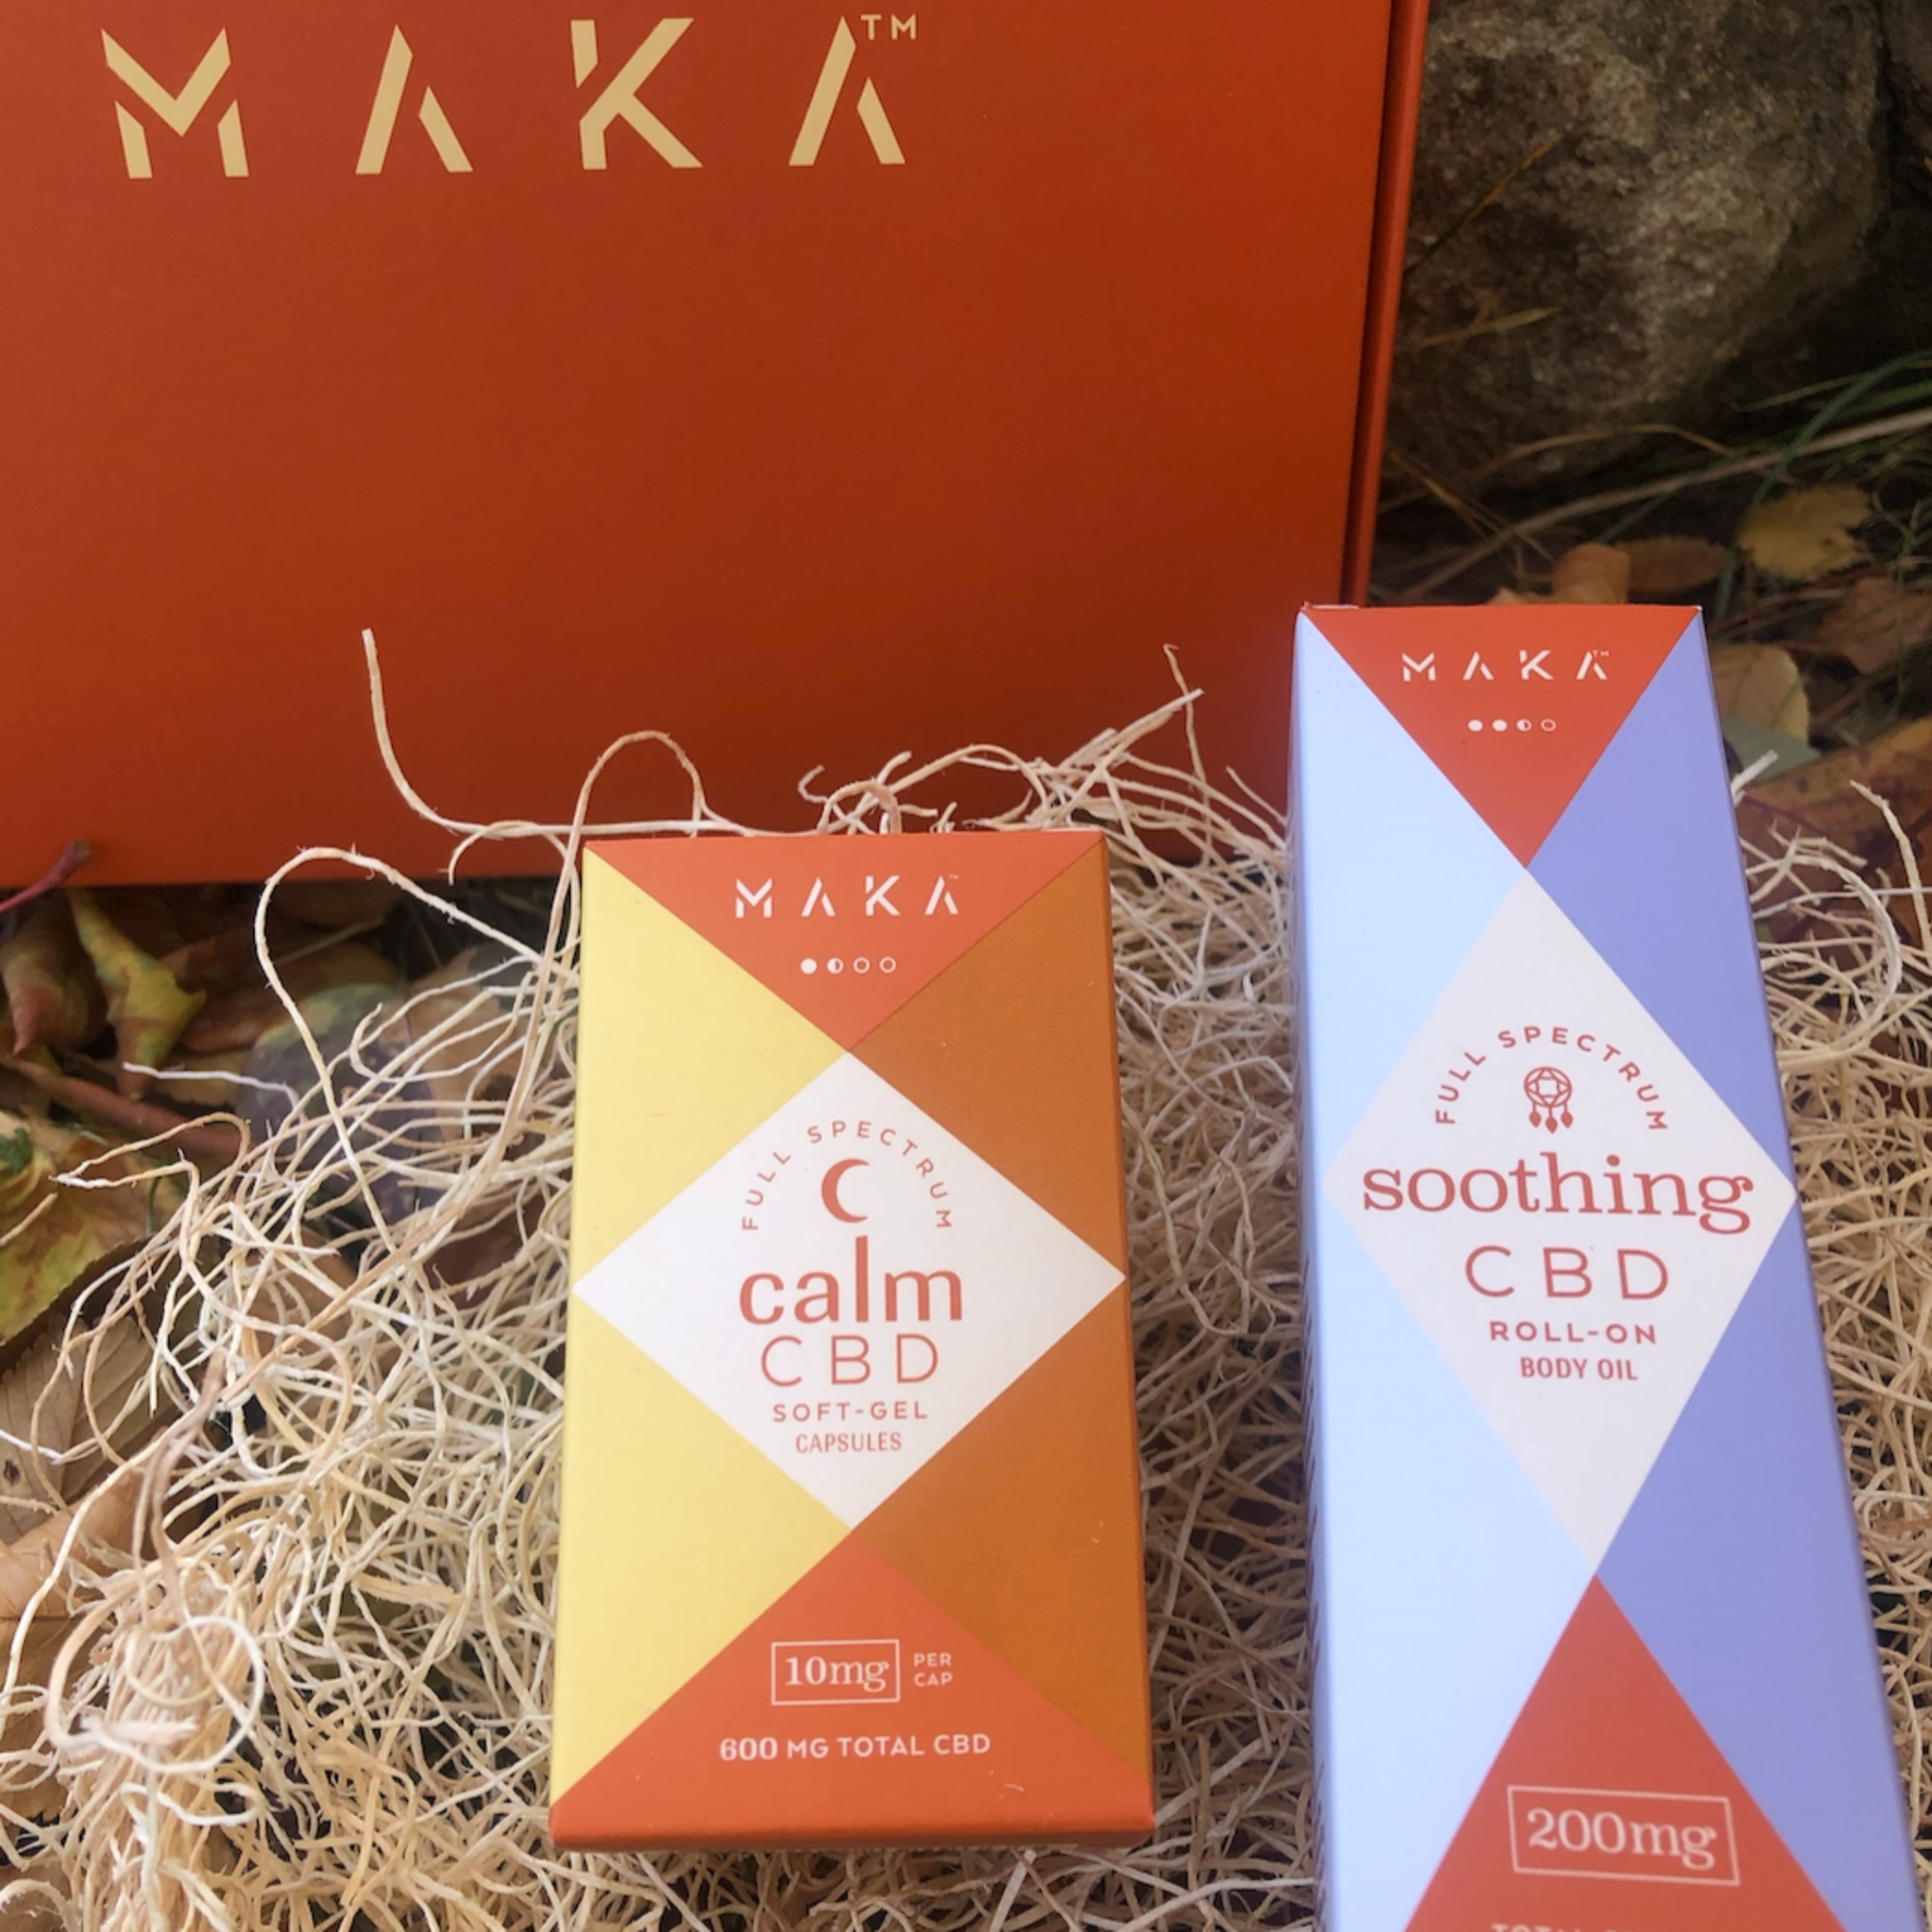 maka-earth-product-image/durango-sustainable-business-guide/